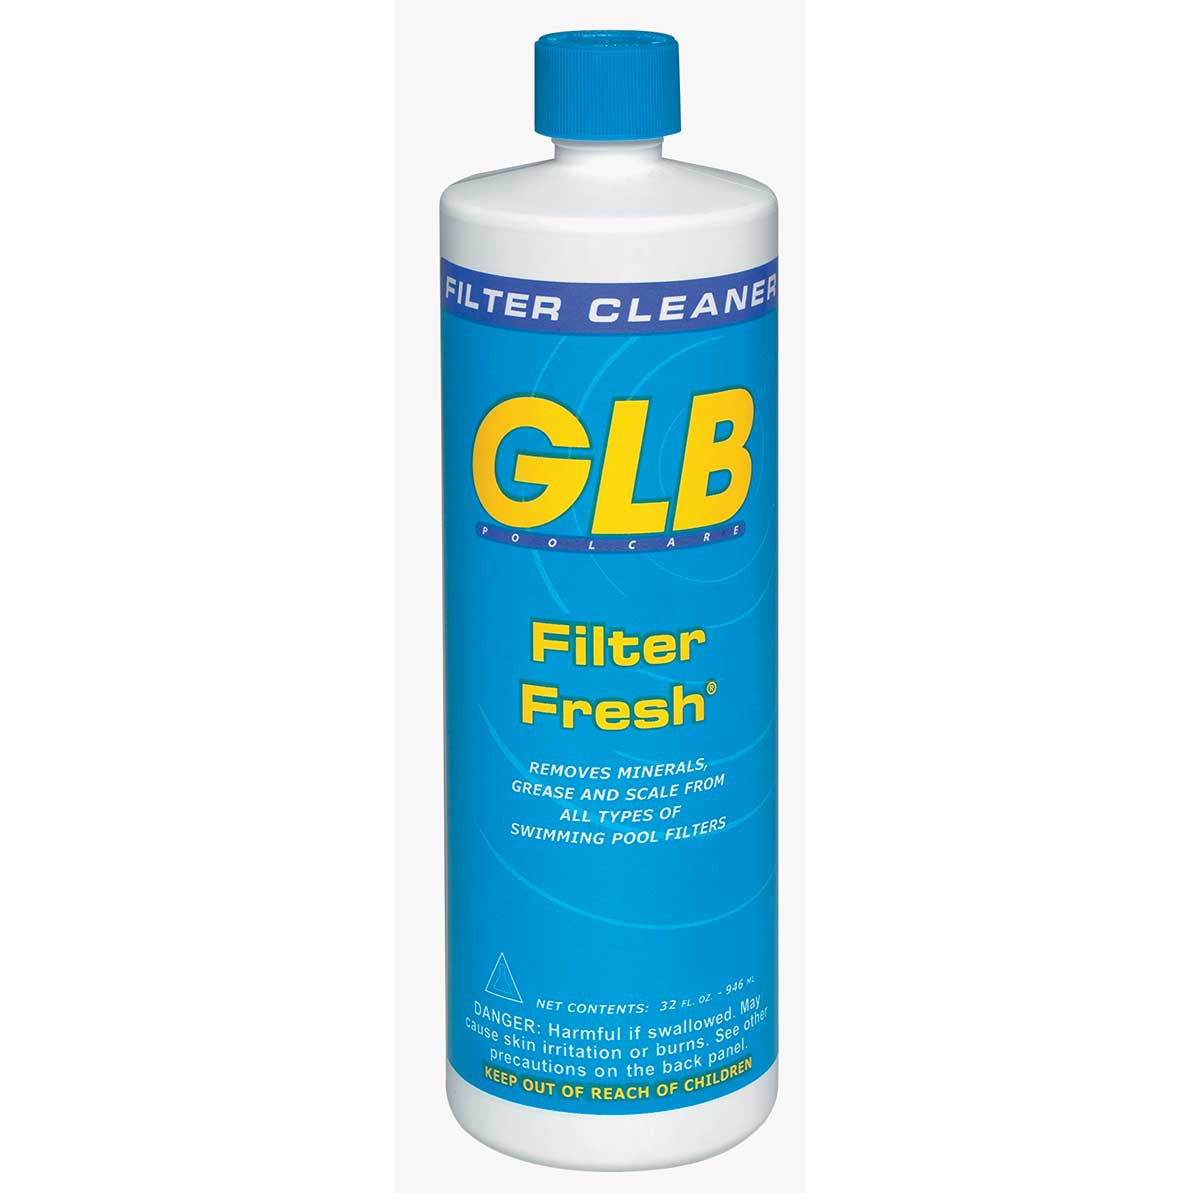 Glb 174 Filter Fresh 174 Pool Filter Cleaner Phin Specialty